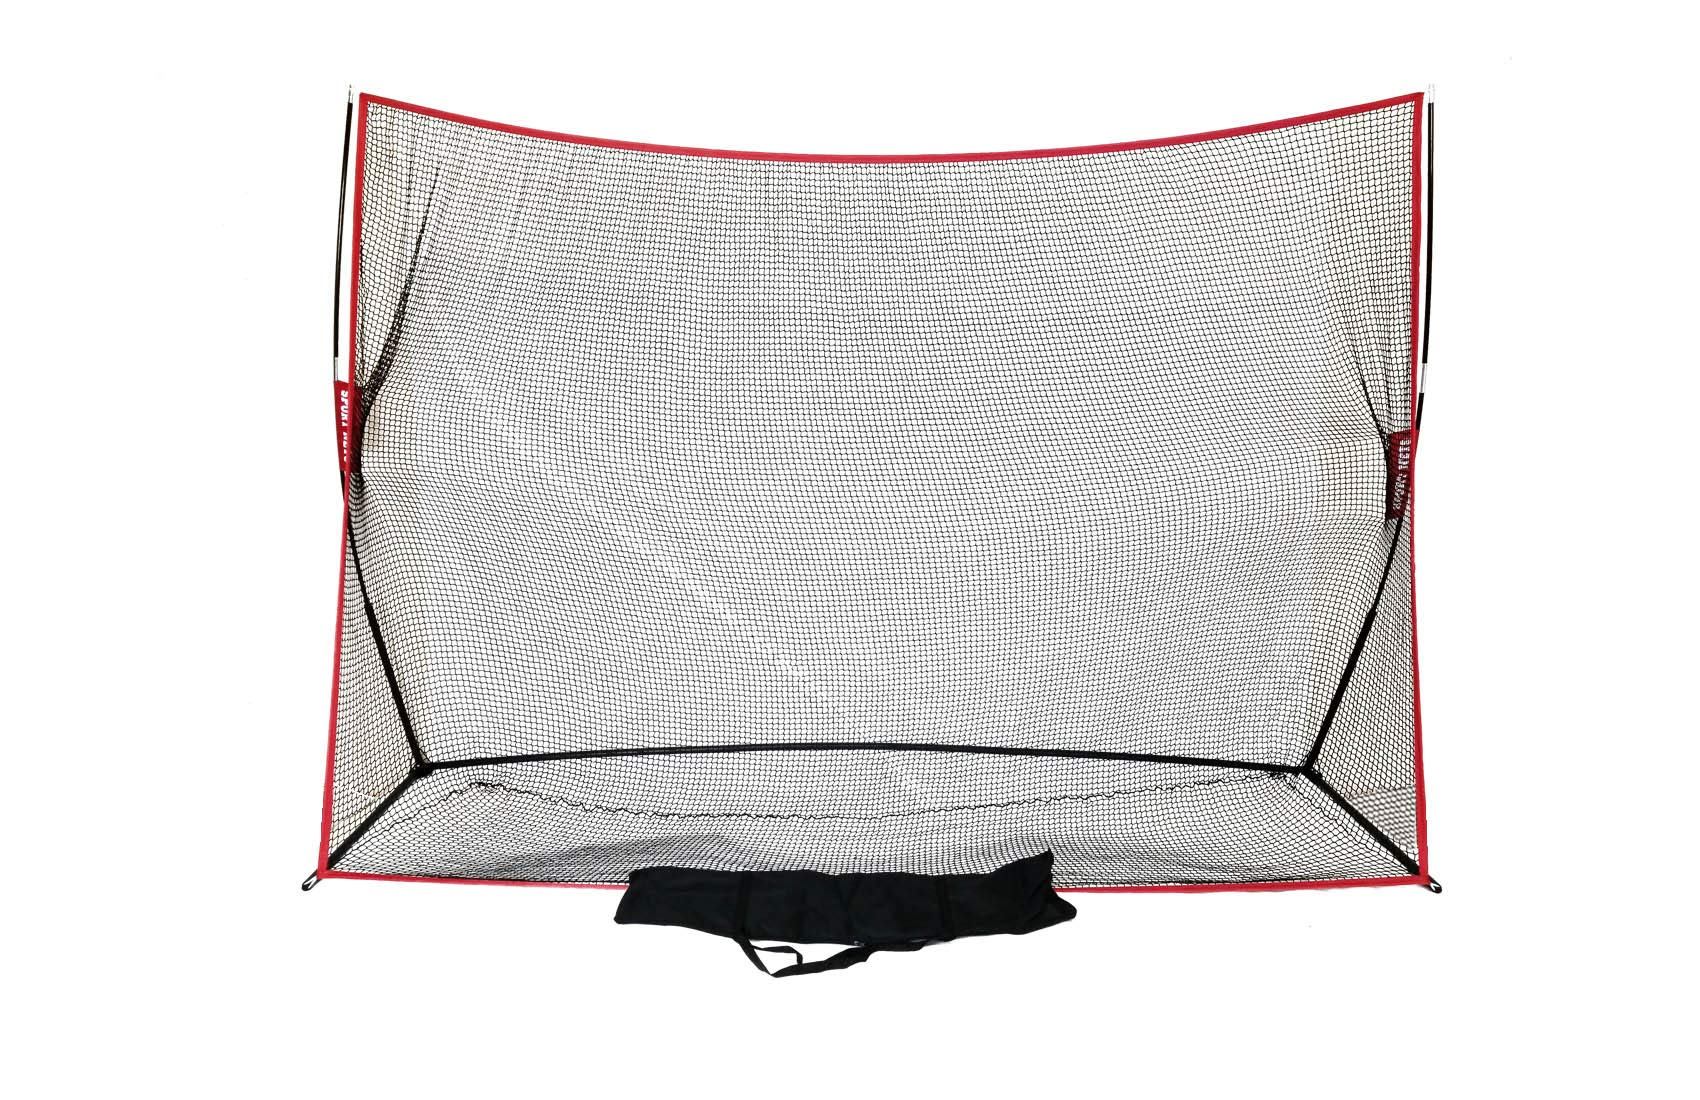 Sport Nets Heavy Duty Golf Net 10 X 7 - Perfect Golf Practice Net  For Indoor Outdoor Garage Backyard Golf Practice.  Golf Hitting Net Is A Portable Home Driving Range. Comes W/ Carry Bag by Sport Nets